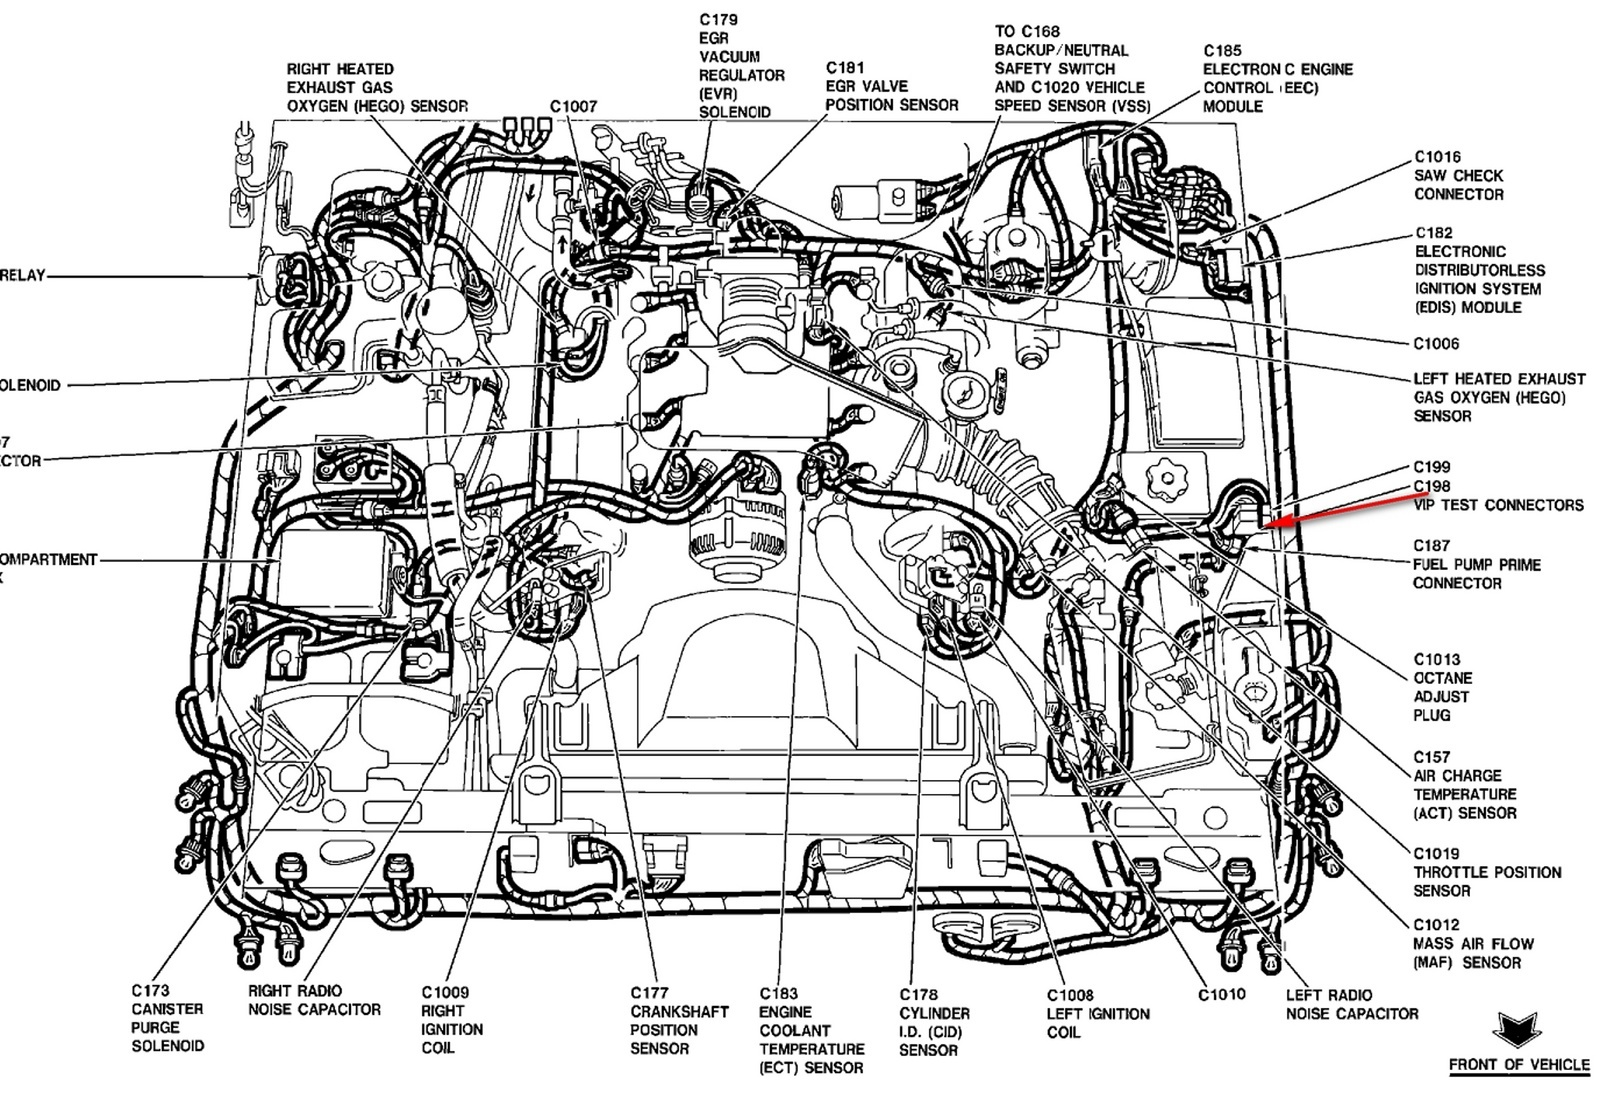 hight resolution of 01 impala low coolant wiring diagram wiring diagram local 01 impala low coolant wiring diagram wiring